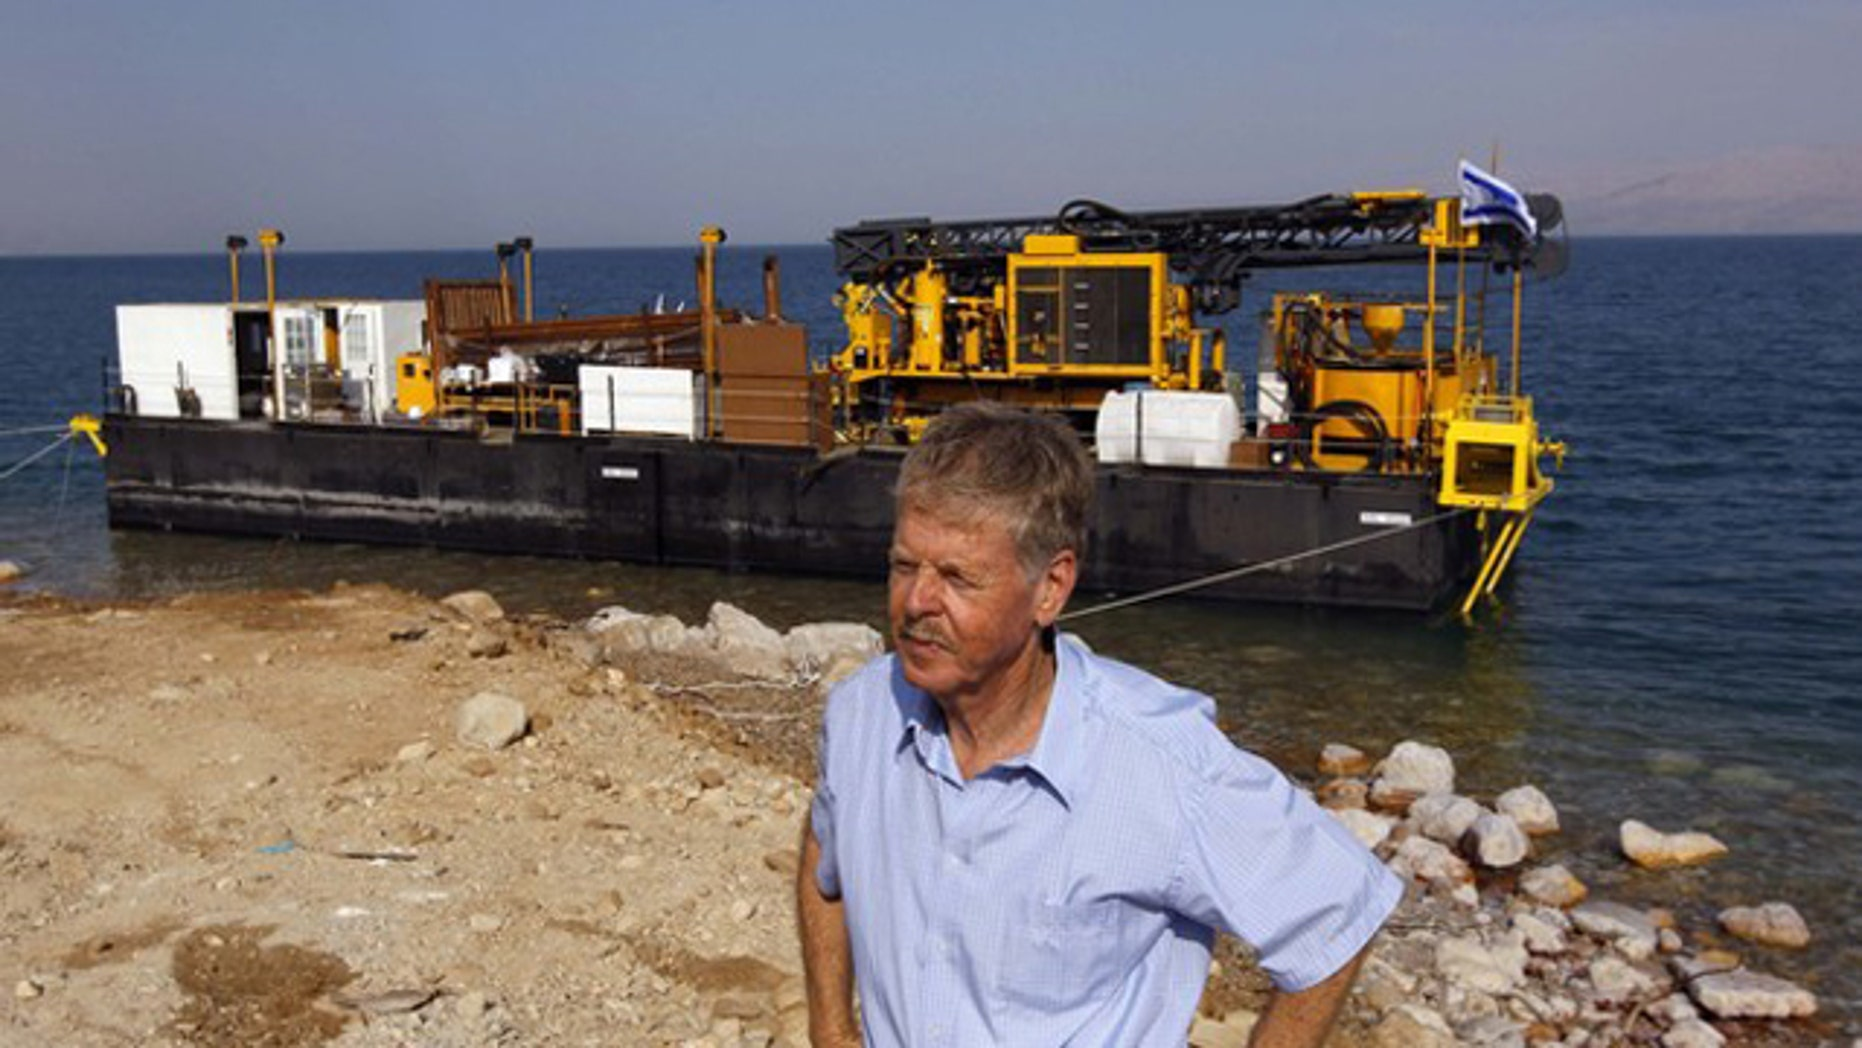 Zvi Ben-Avraham, head of the drilling project, stands in front of a moored drilling platform on the shore of the Dead Sea, near Kibbutz Ein Gedi November 16, 2010. A group of engineers and scientists will analyze 500,000 years of geological history, deciphering patterns and using them to find the best way to manage the earth's resources and environment.